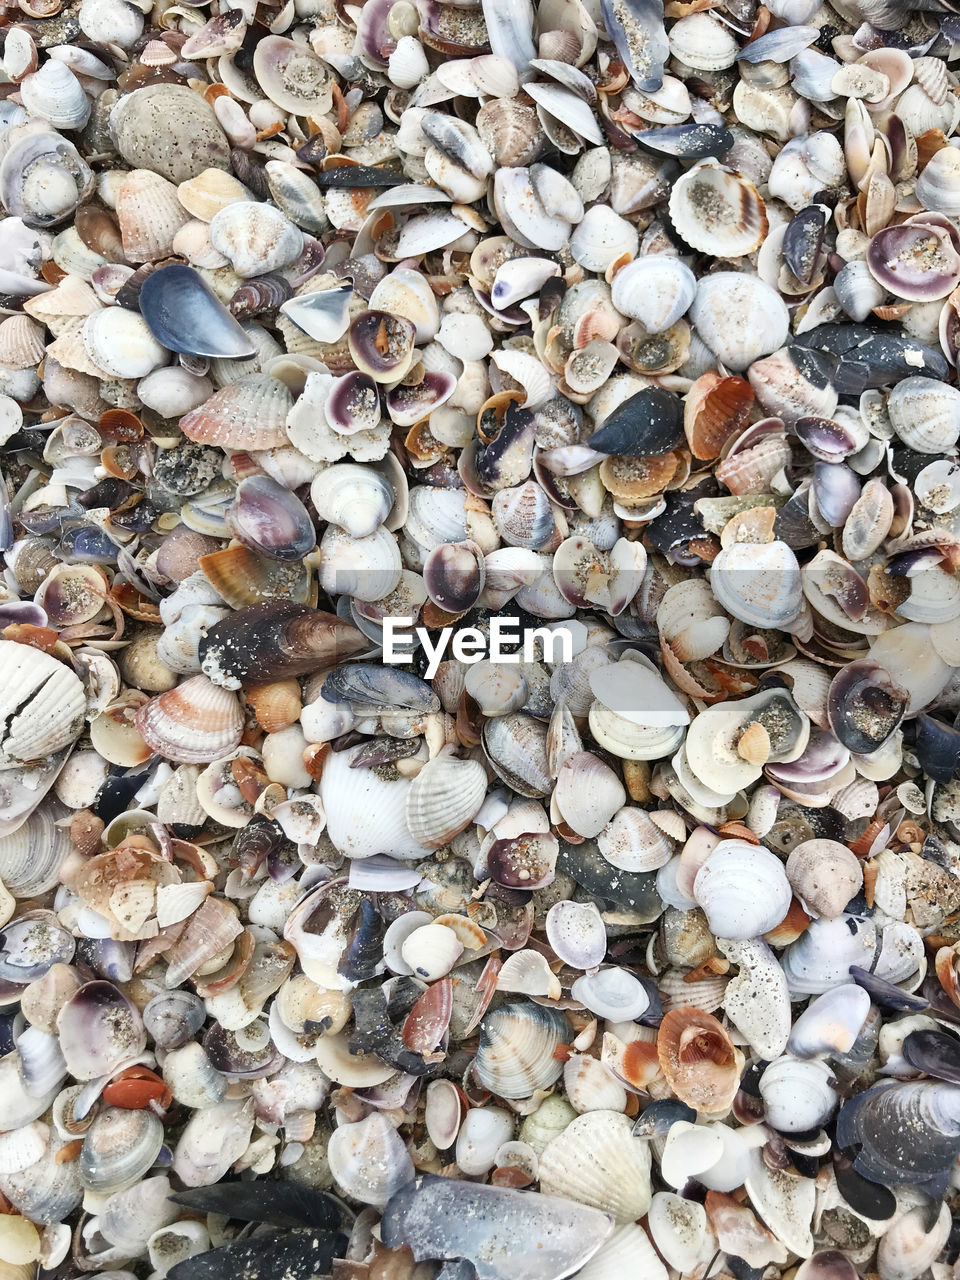 full frame, backgrounds, abundance, large group of objects, pebble, nature, seashell, no people, directly above, outdoors, day, beach, close-up, pebble beach